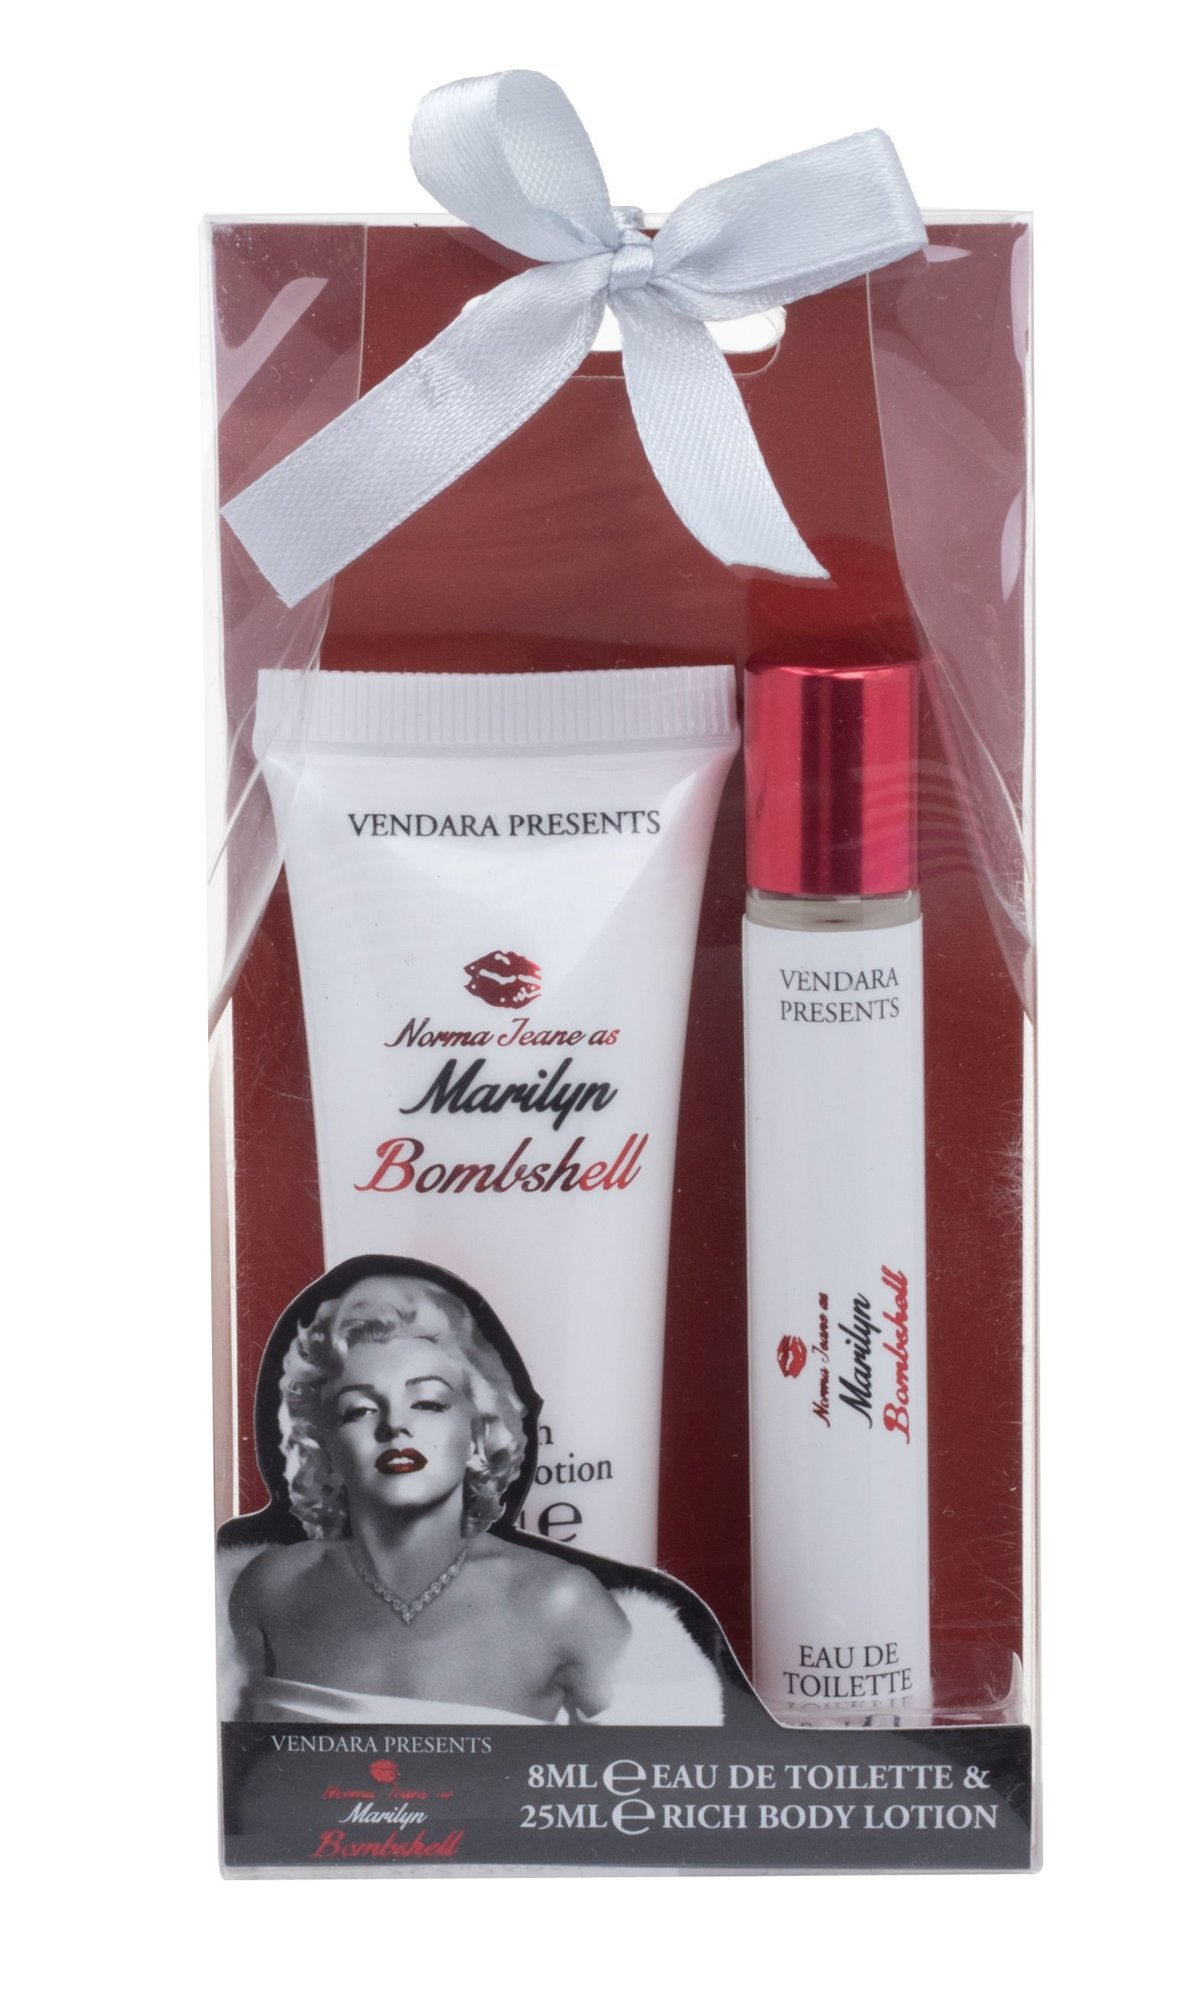 Vendara Presents Marilyn Bombshell EDT 8ml